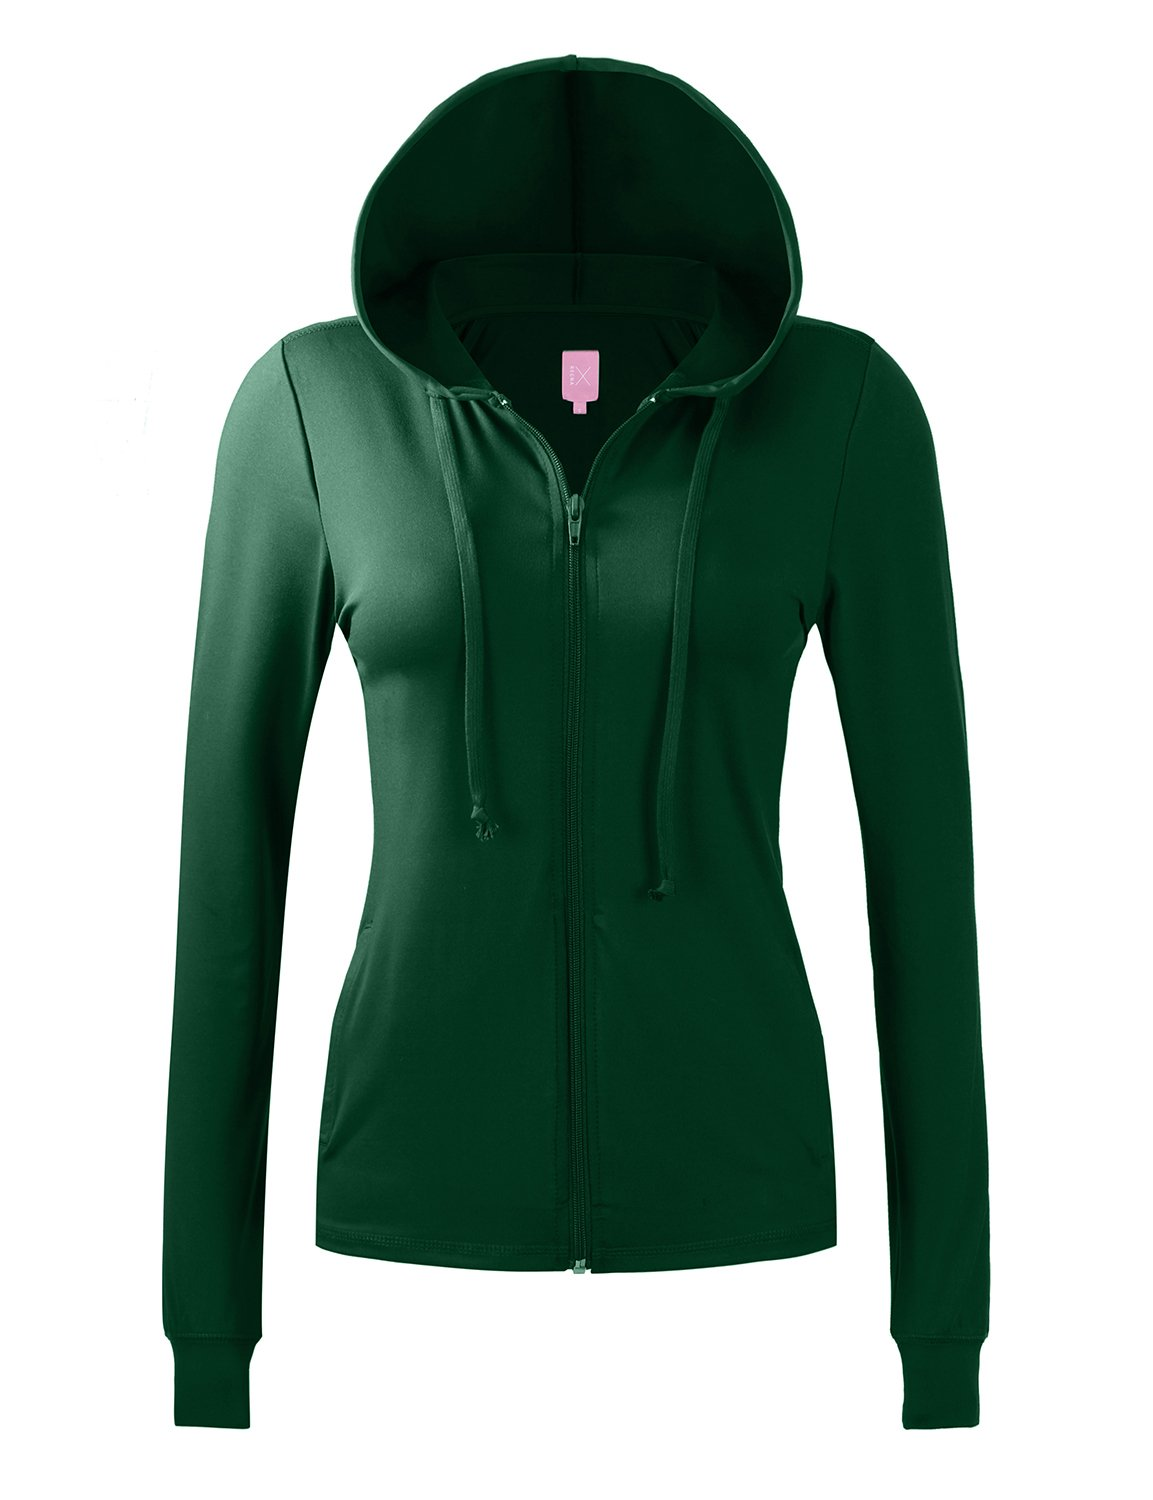 REGNA X NO BOTHER Womens dry fit running jersey gym full zip up hoodie jacket Large, Green